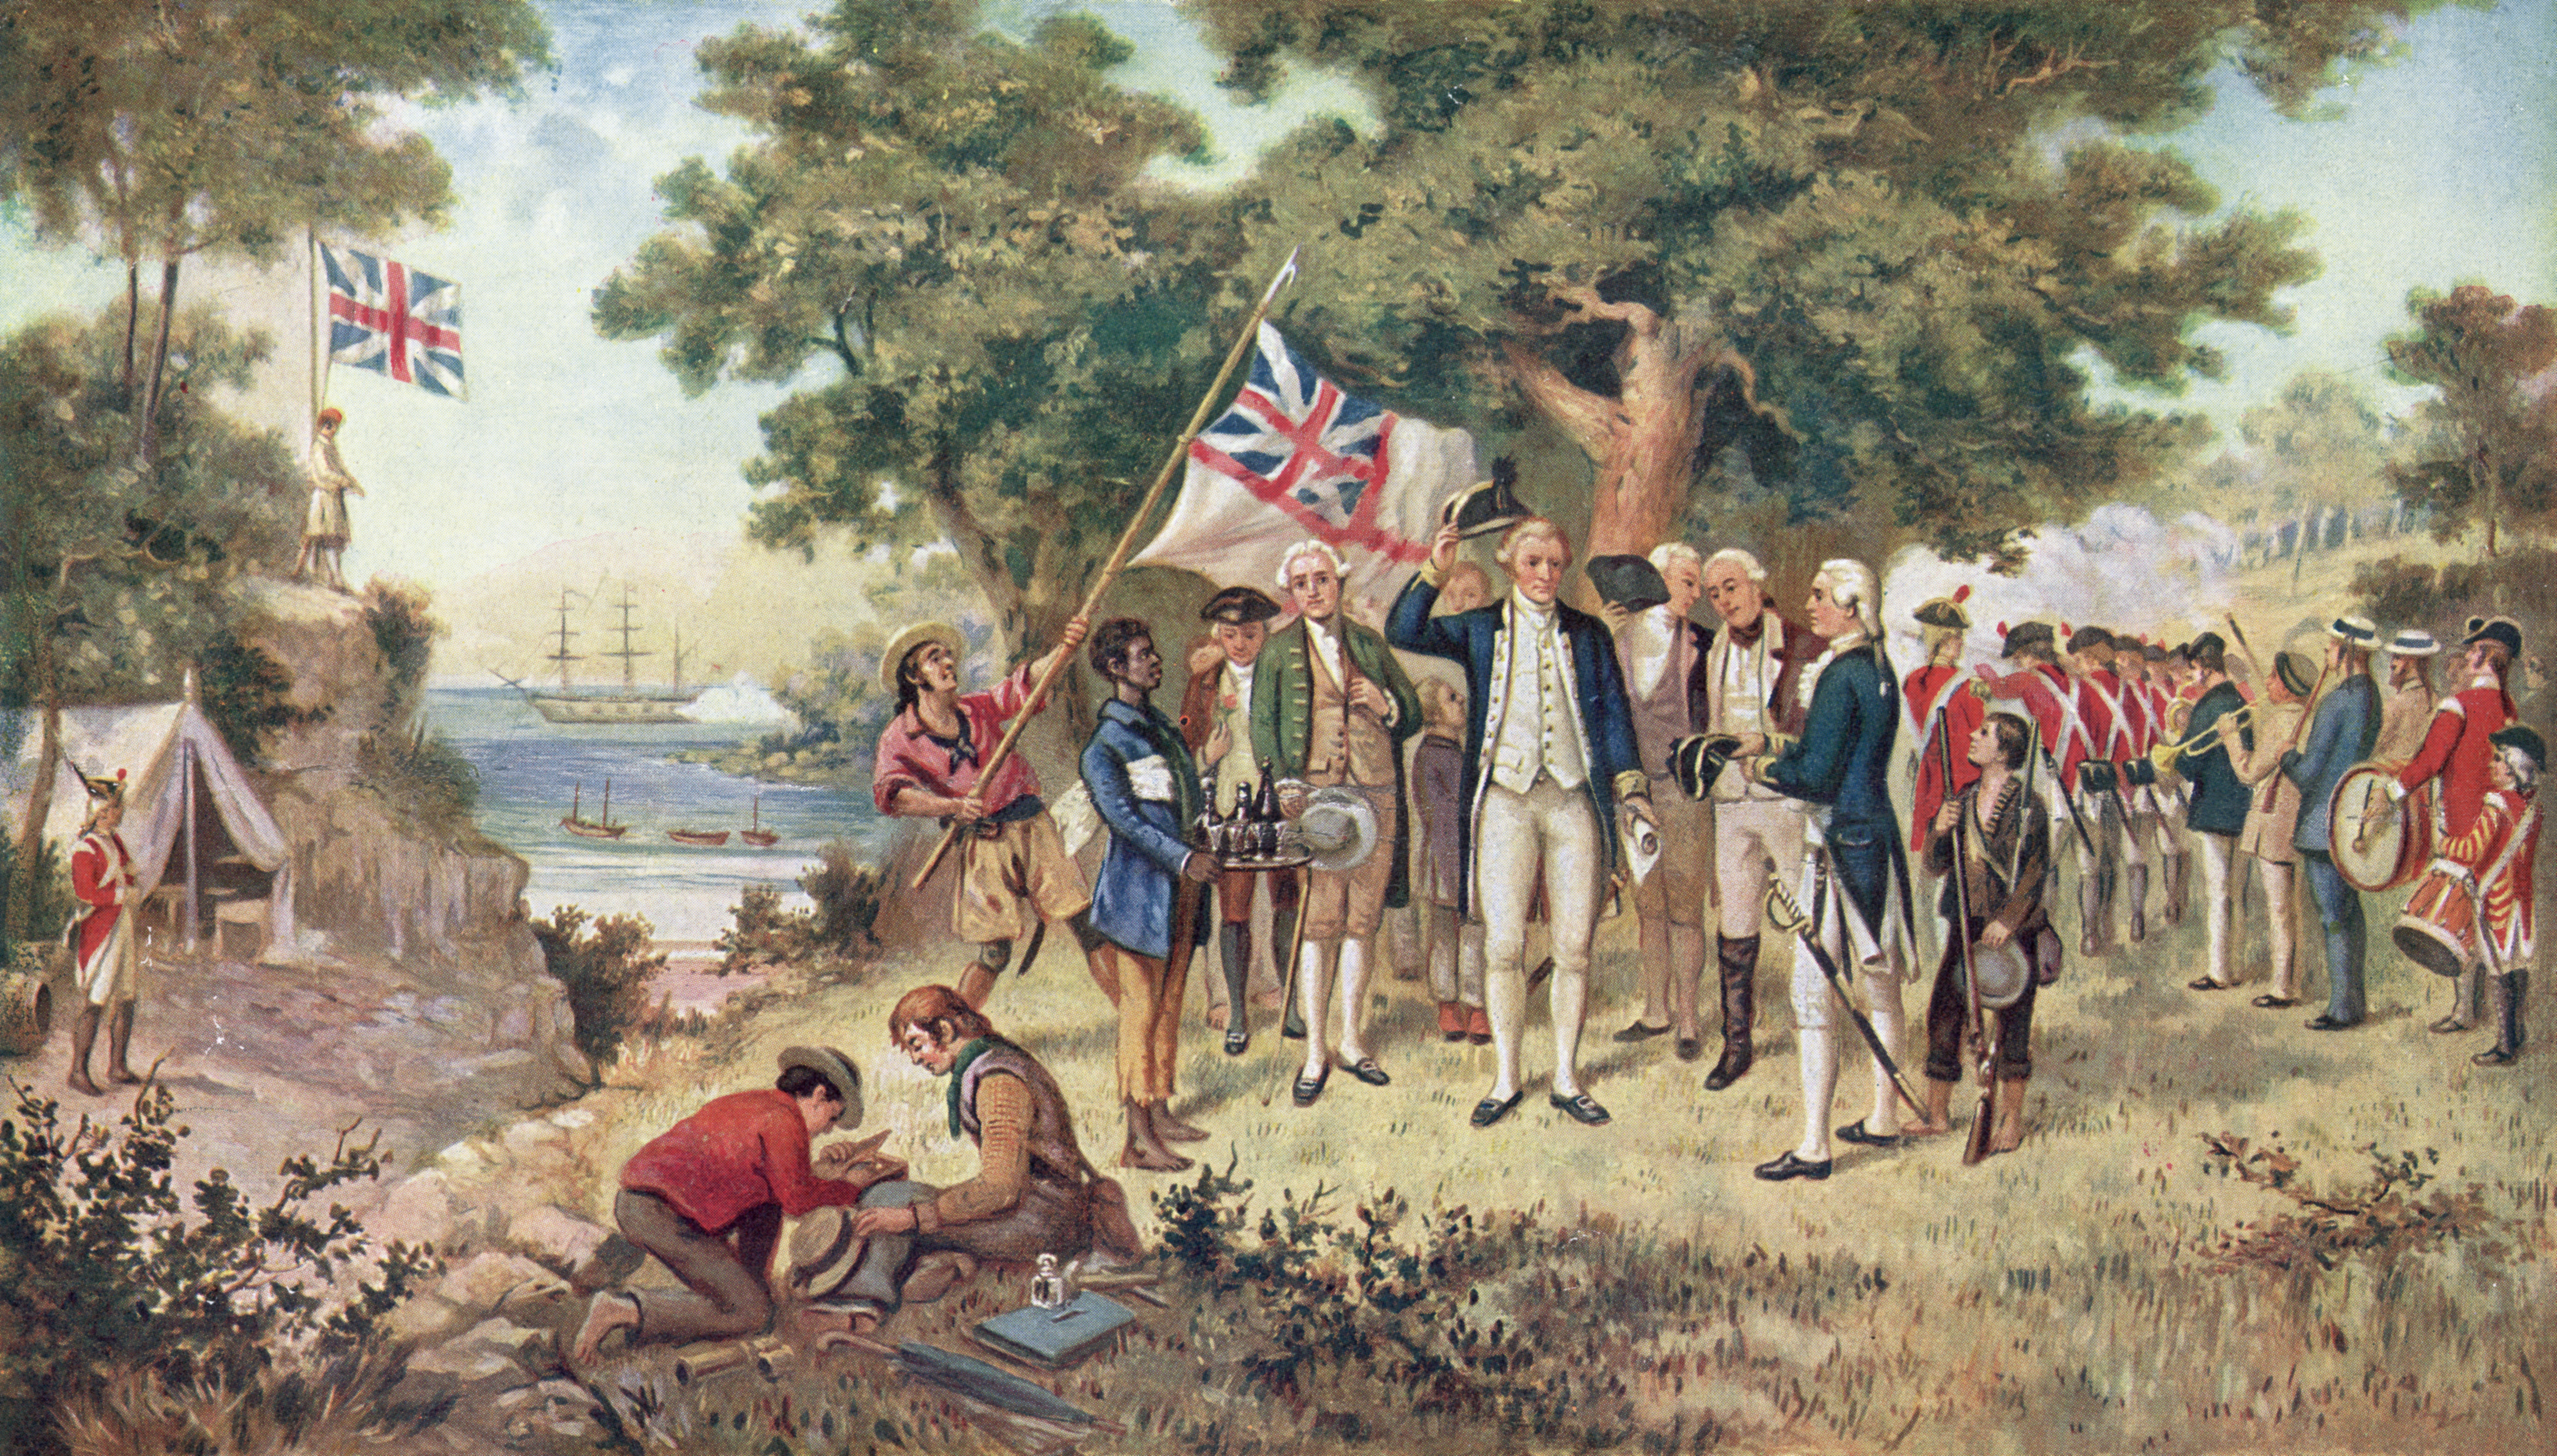 1st April 1770:  A print from a painting showing Captain James Cook (1728 - 1779) taking possession of New South Wales, taken from the collection of the Philosophical Institute of Victoria